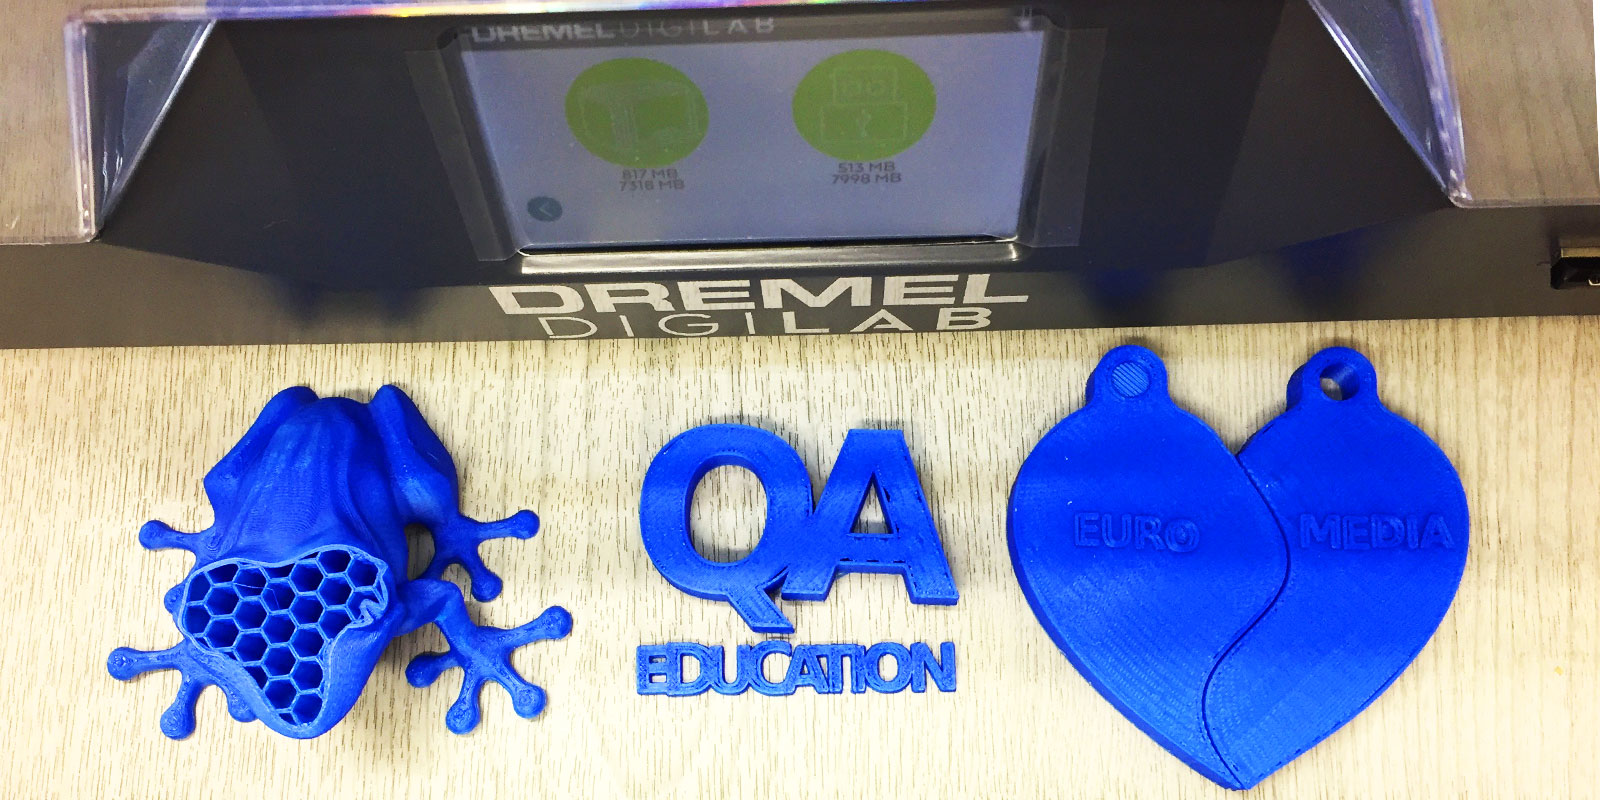 Dremel DigiLab objects built by QA Education team